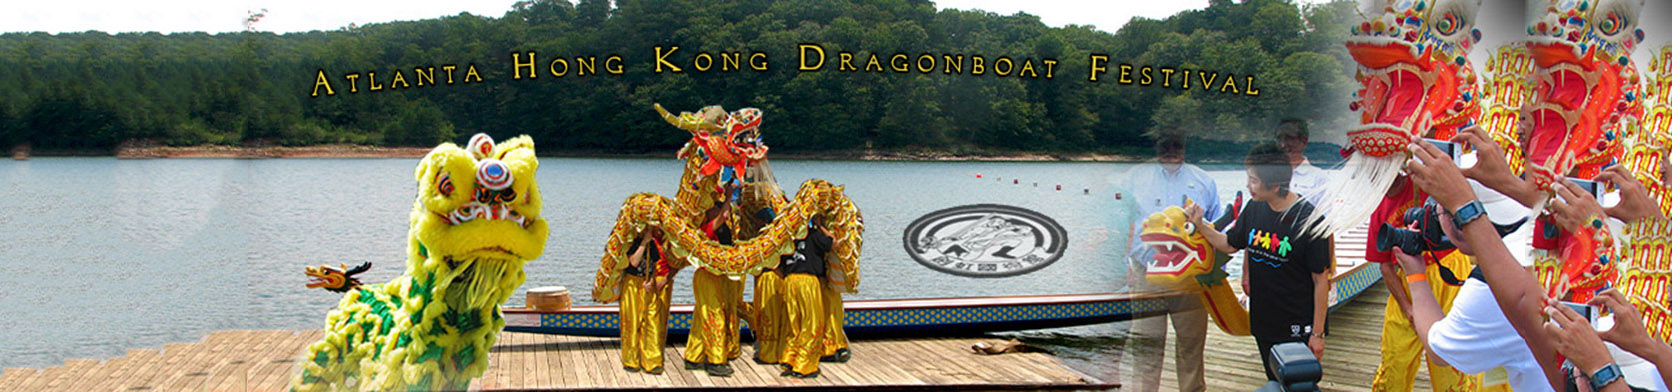 dragon-boat-compilation_02_1280_02